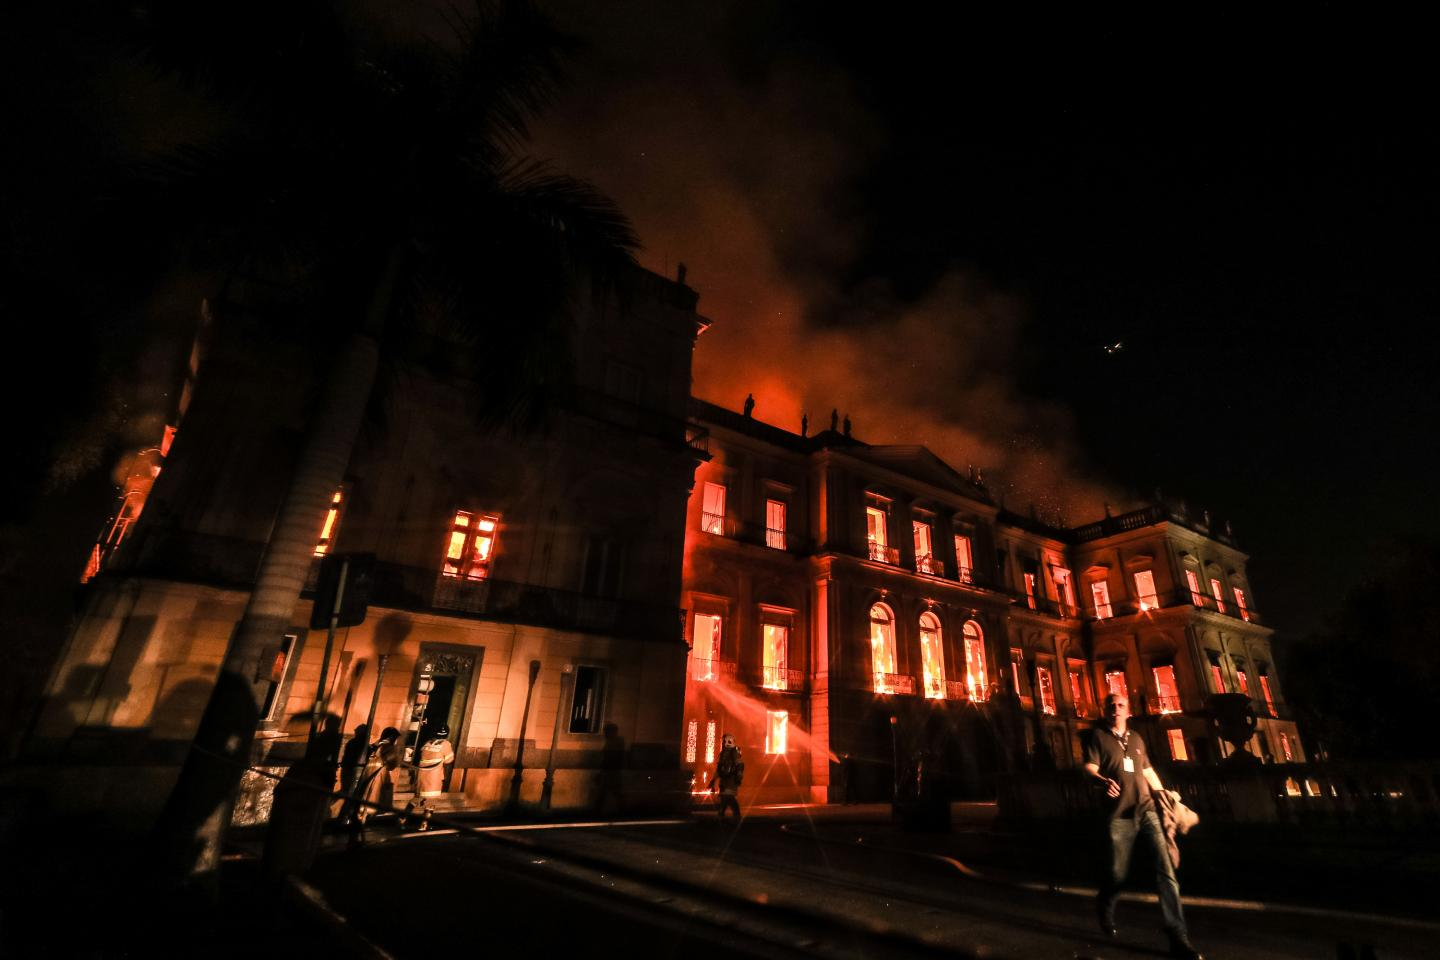 Image of museum ablaze with fire in the dark